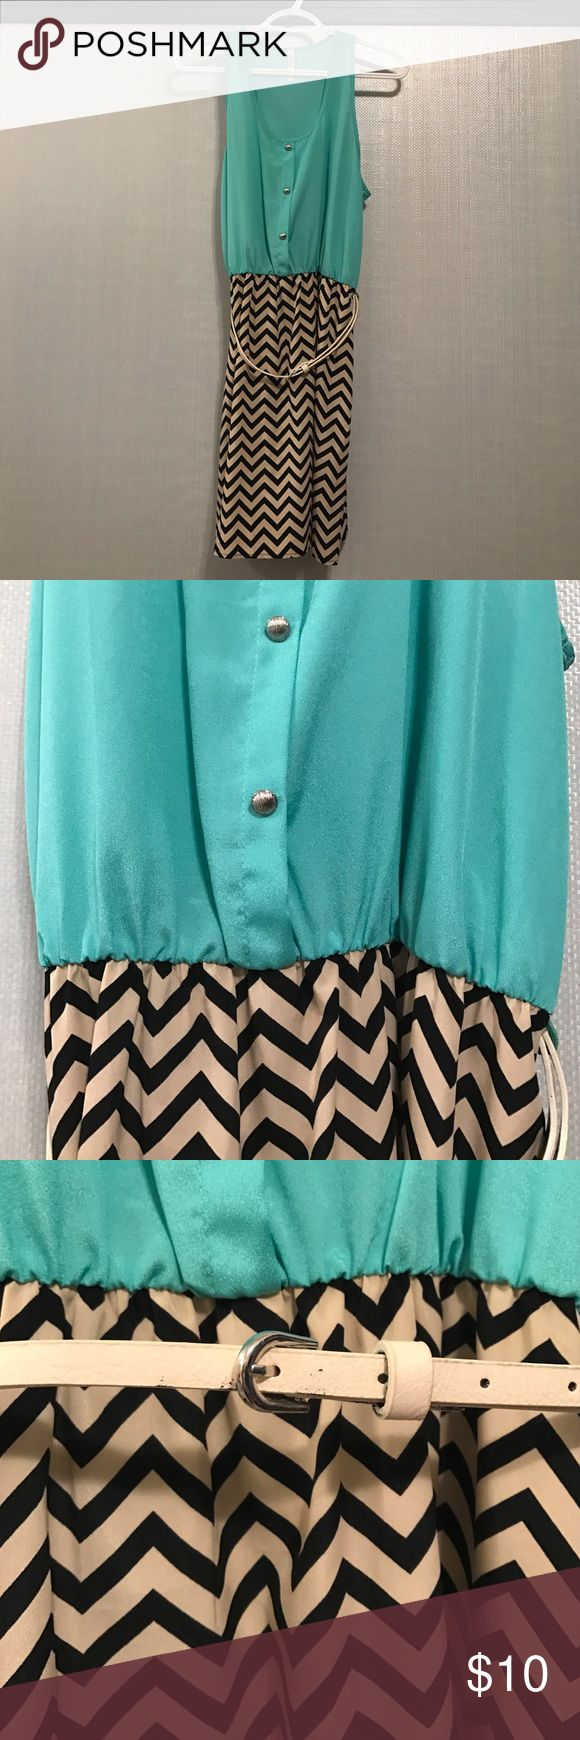 Women's chevron print dress Chevron printed dress in great condition! Dress comes with white belt pictures. Brand is Millibon and size is Medium. Millibon Dresses